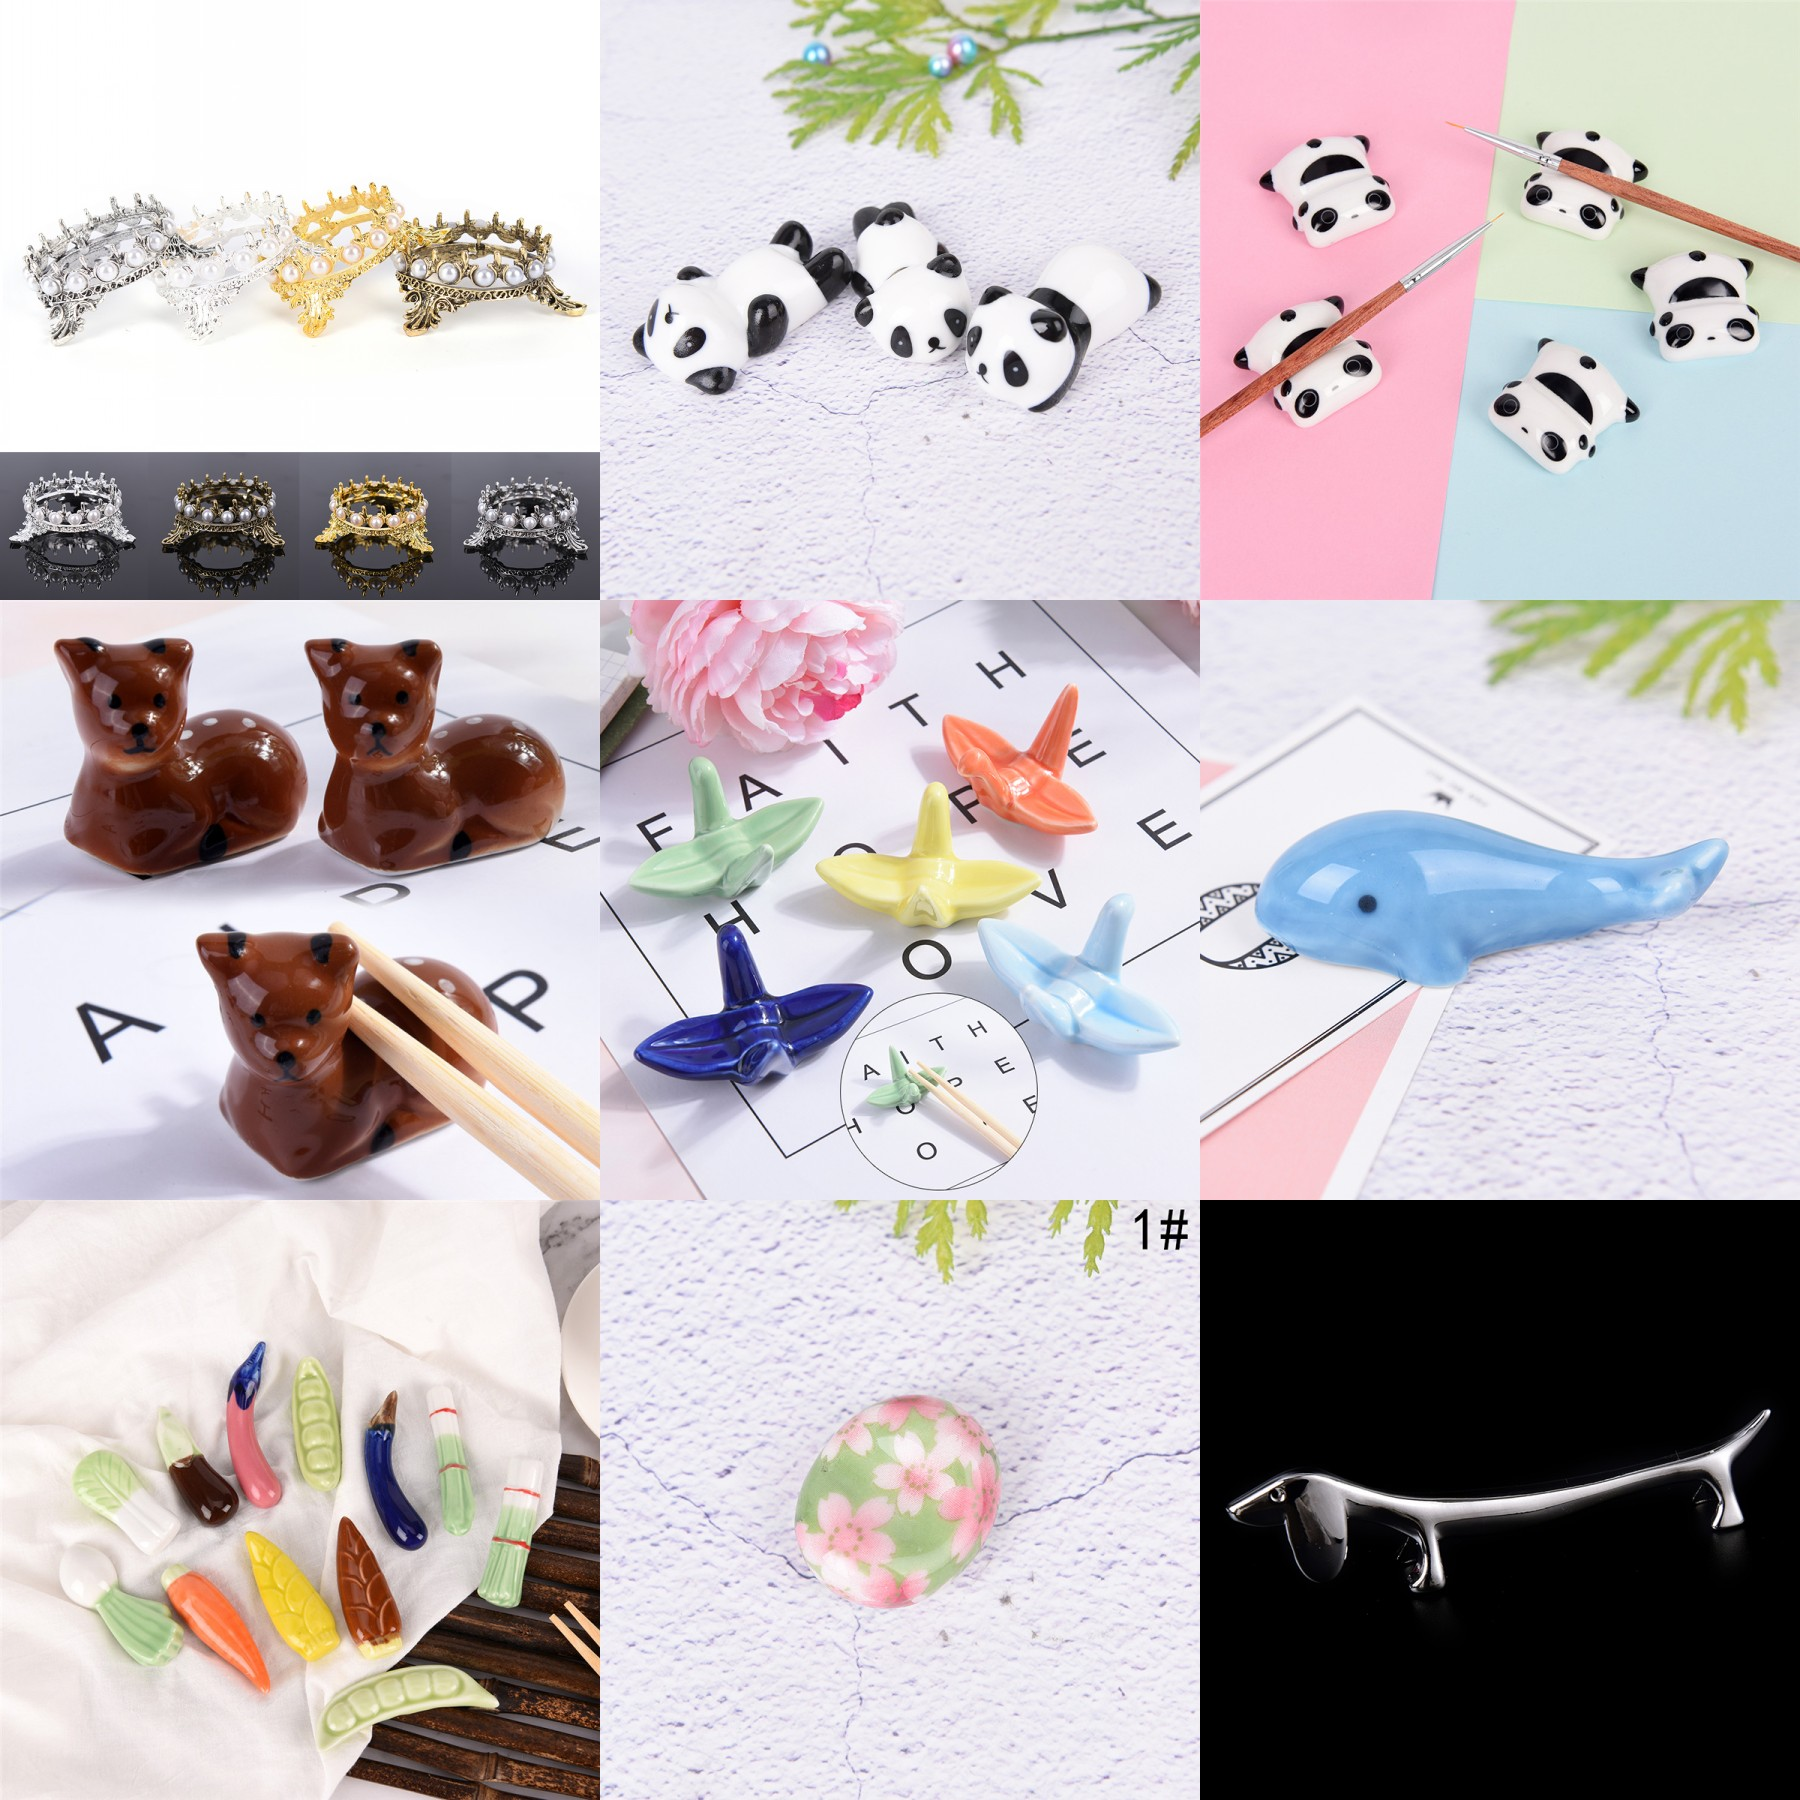 Learned Crown Pearls Dog Cat Fruit Pencil Pens Brushs Stand Rack Decor Salon Home Diy Manicure Nail Carving Drawing Pens Brushes Holder Last Style Office & School Supplies